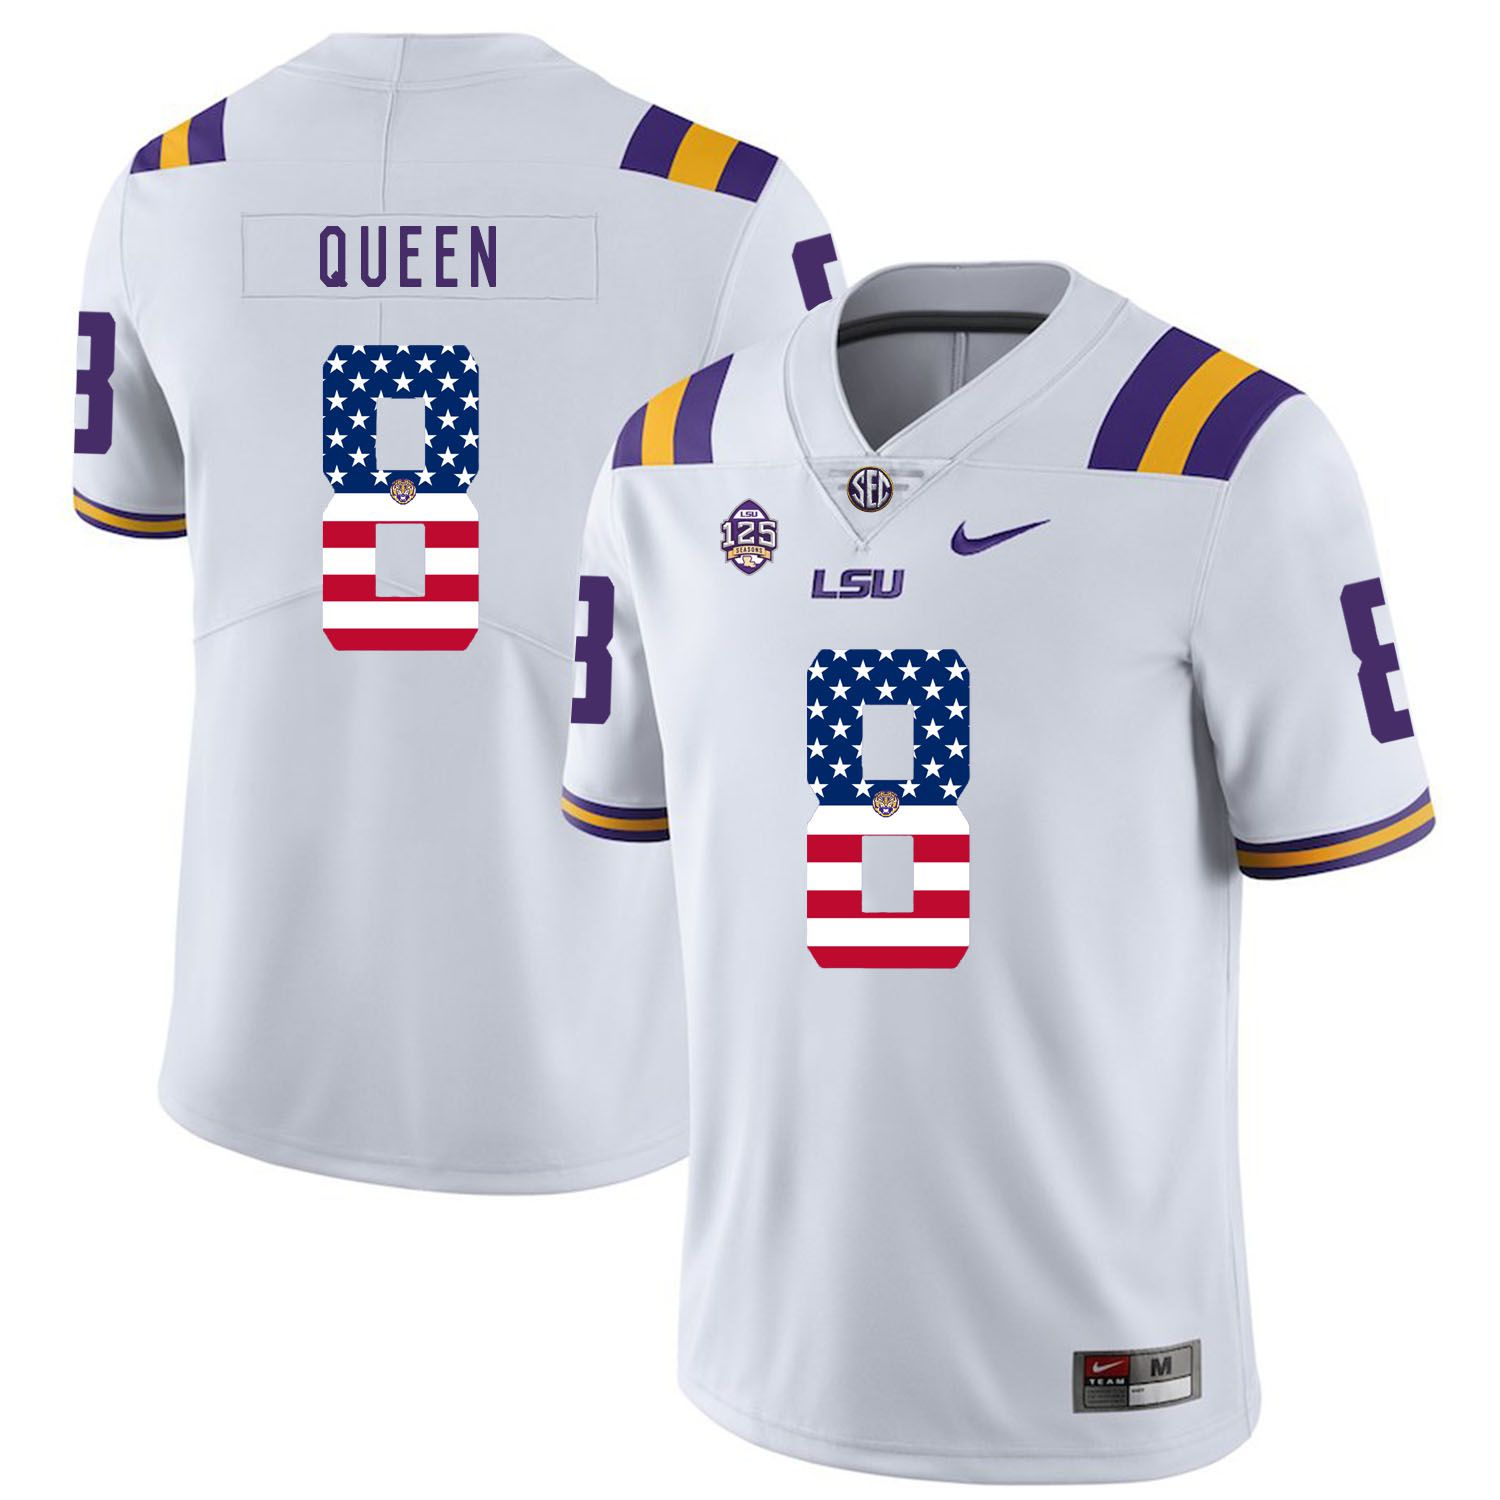 Men LSU Tigers 8 Queen White Flag Customized NCAA Jerseys